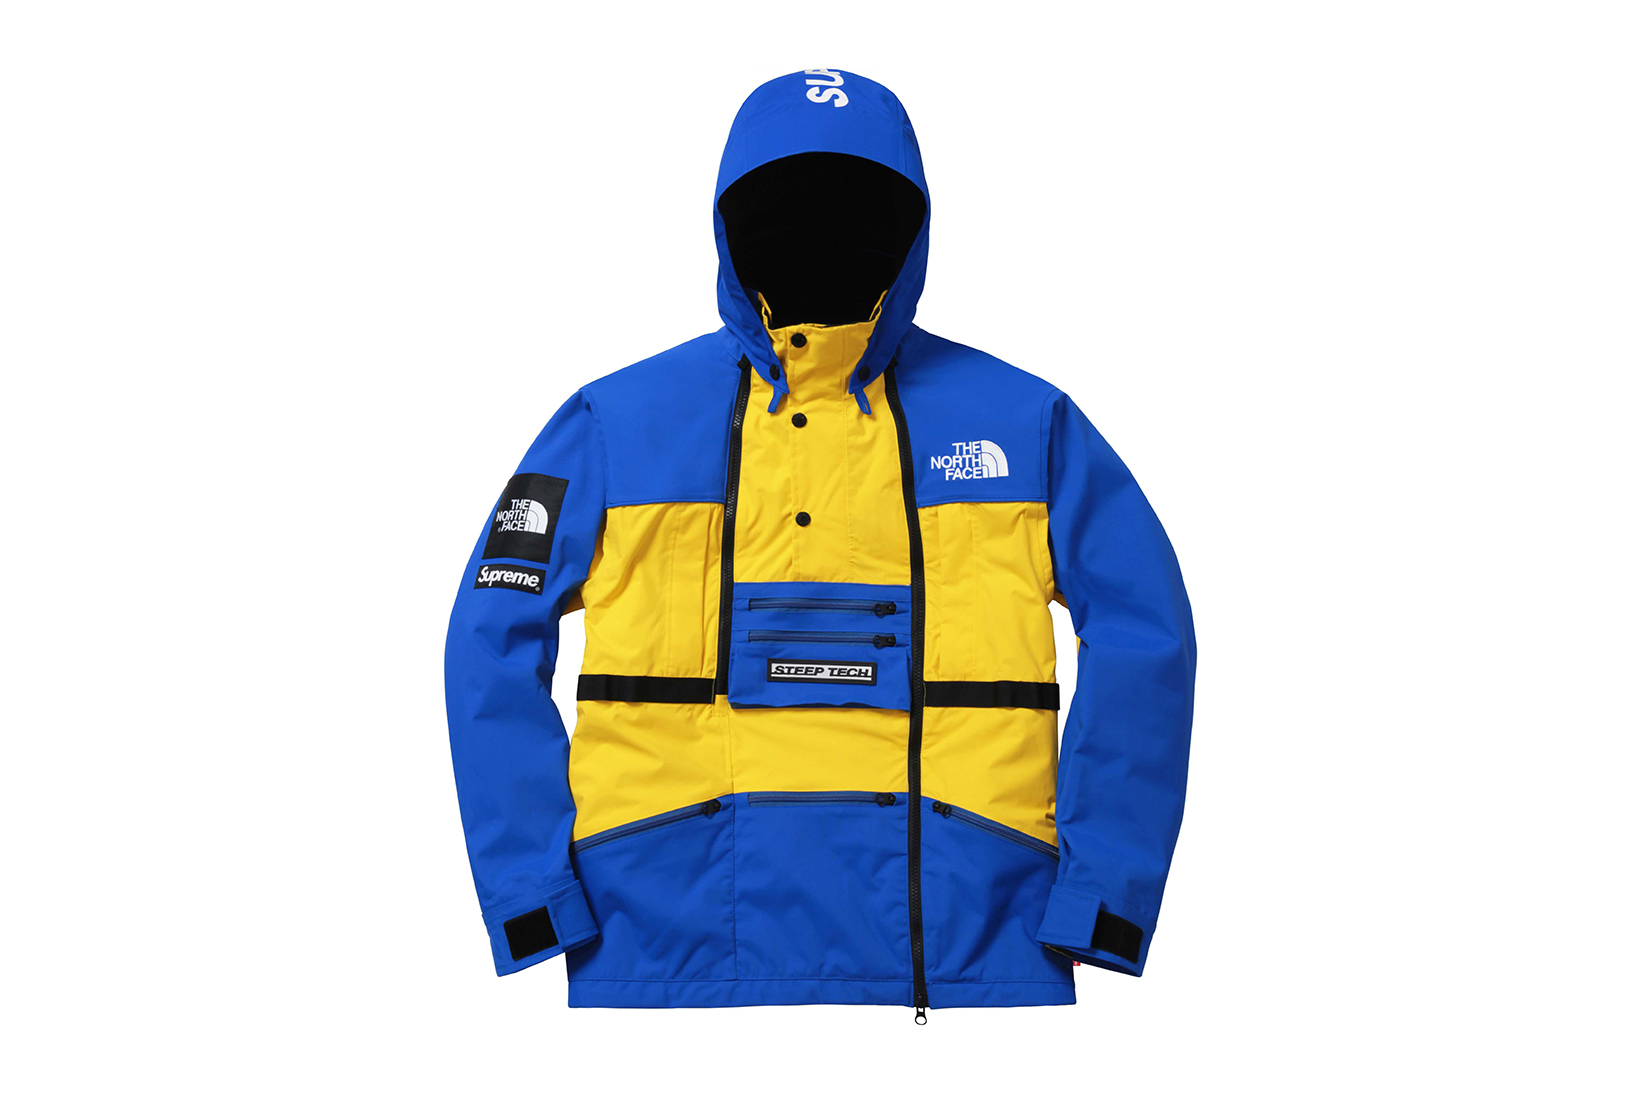 Shop the latest The North Face jackets, coats, clothing & gear at soundinstruments.ml Premium Outdoor Gear · New Arrivals · Talk to Gearheads 24/7 · Free 2-Day Shipping.